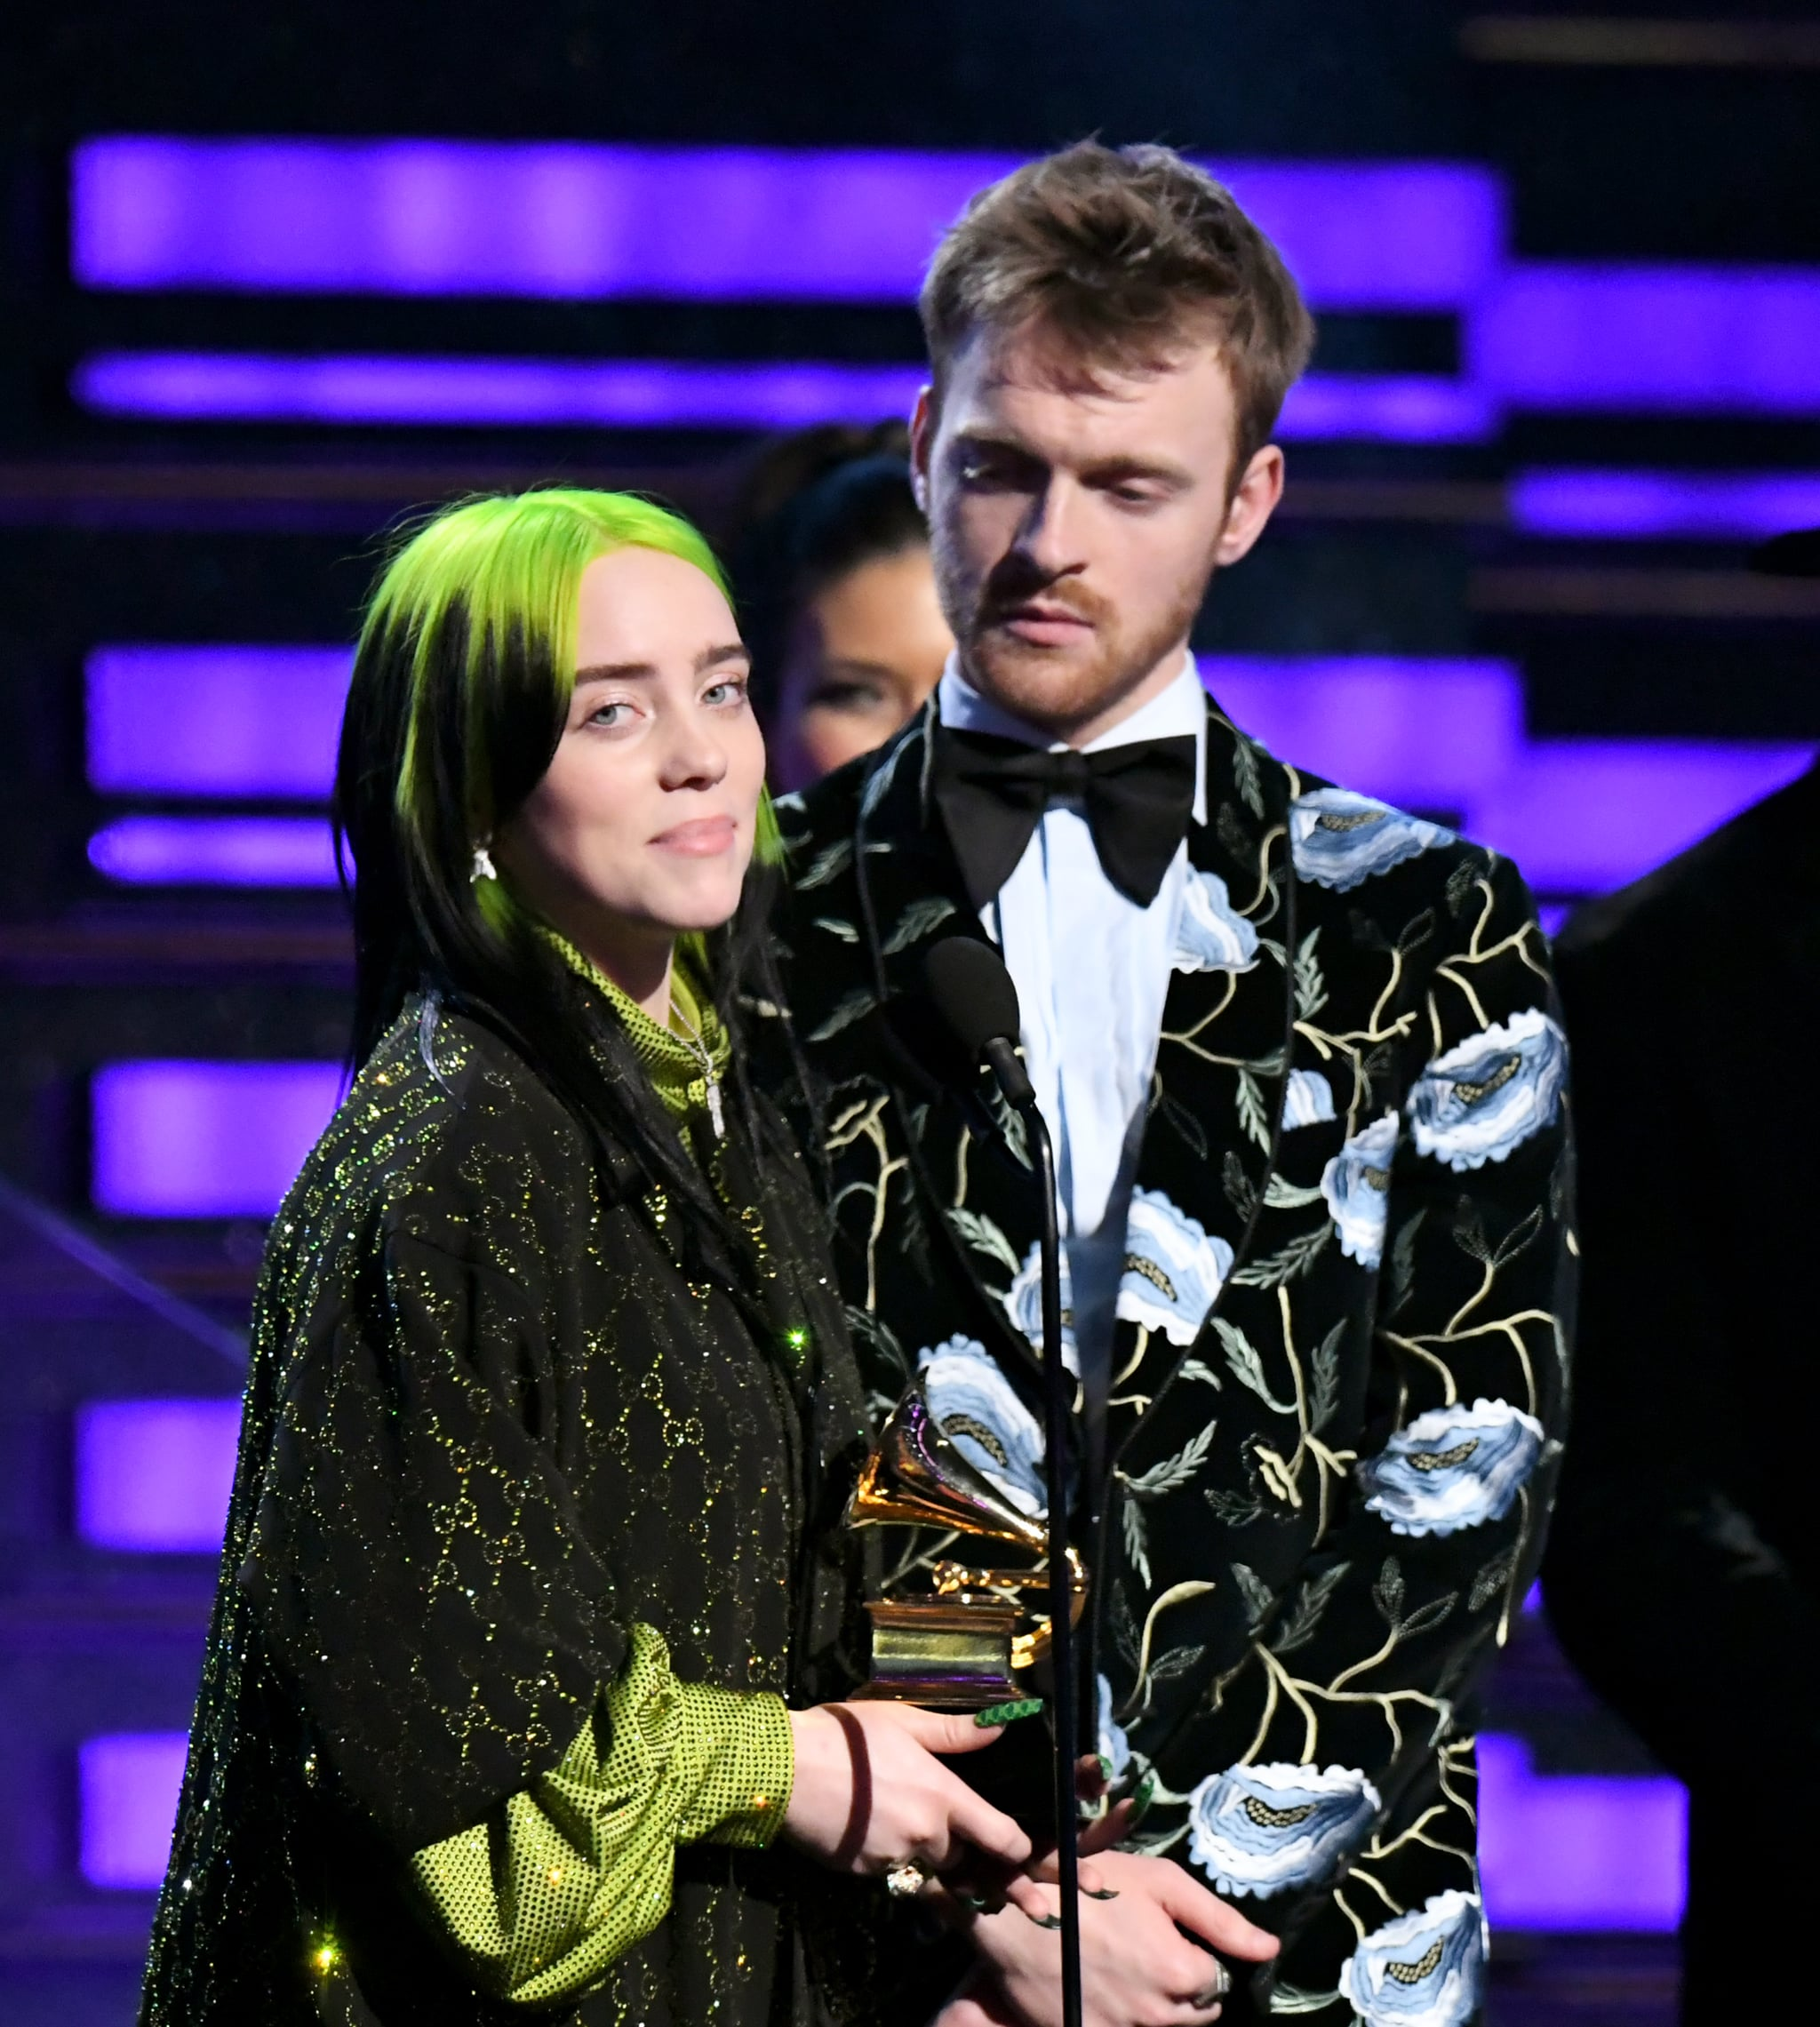 LOS ANGELES, CALIFORNIA - JANUARY 26: (L-R) Billie Eilish and Finneas O'Connell accept Album of the Year for